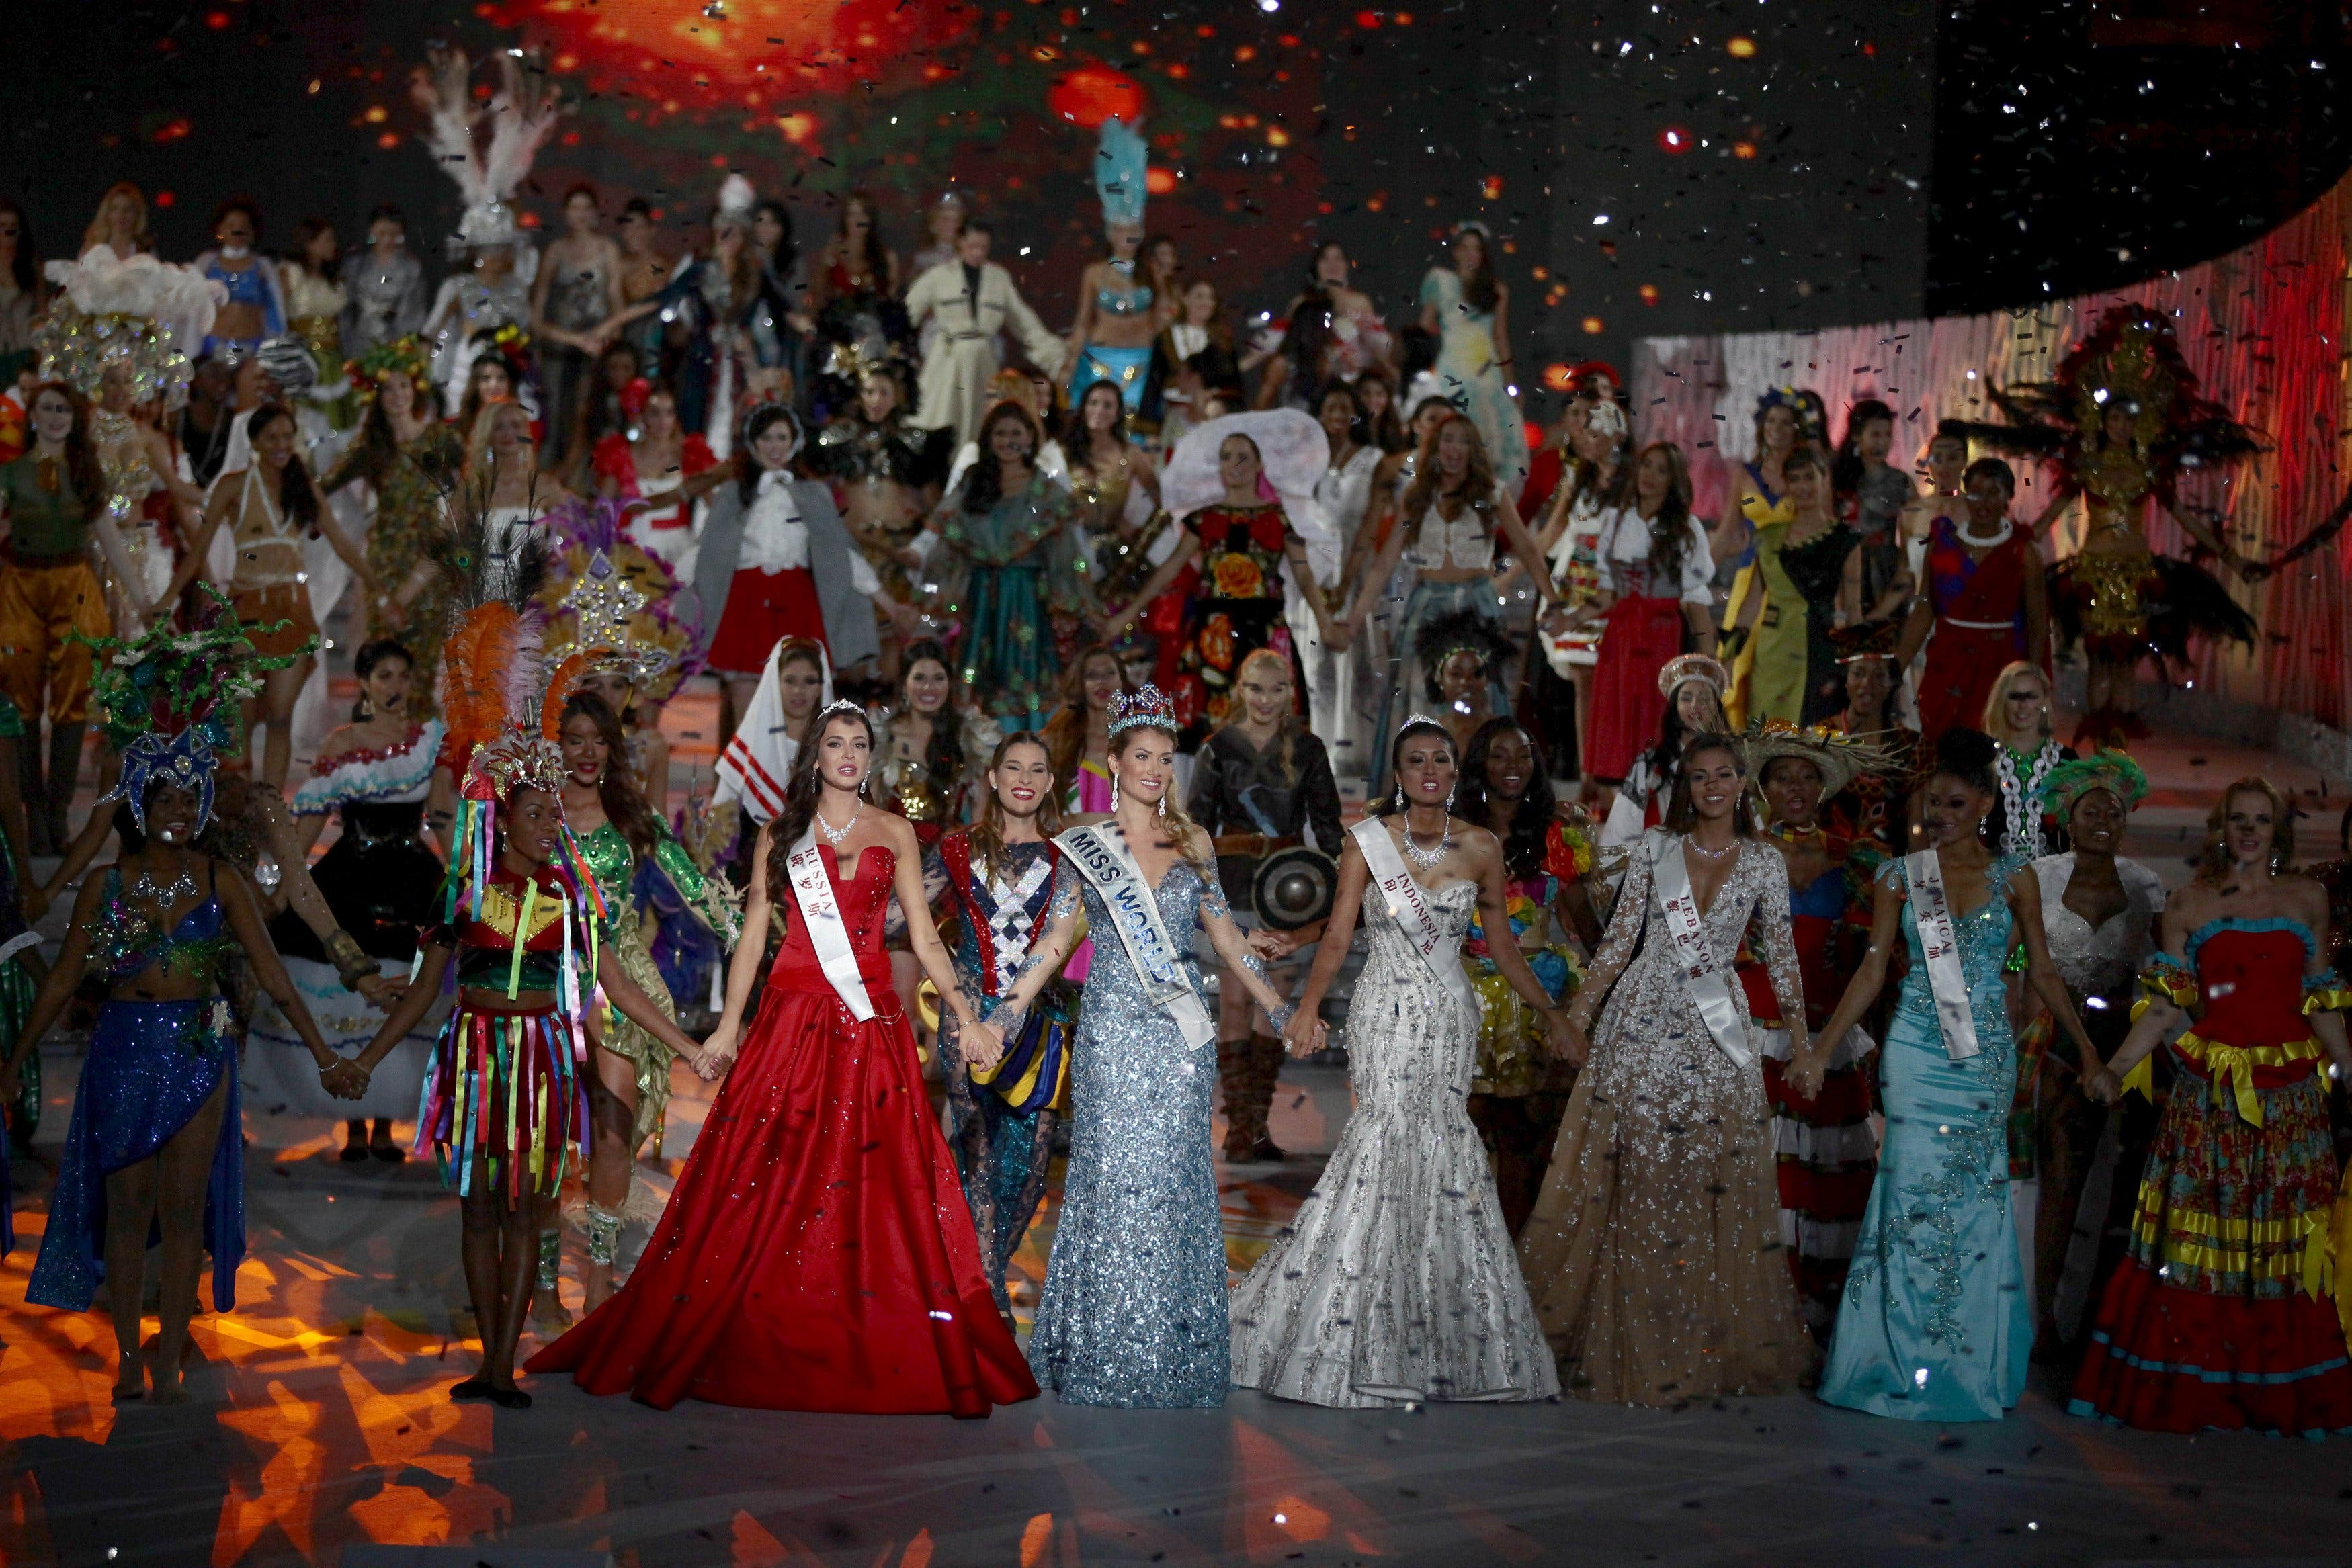 Winner of Miss World 2015 Miss Spain Lalaguna Royo holds hands with other contestants during the pageant in Sanya